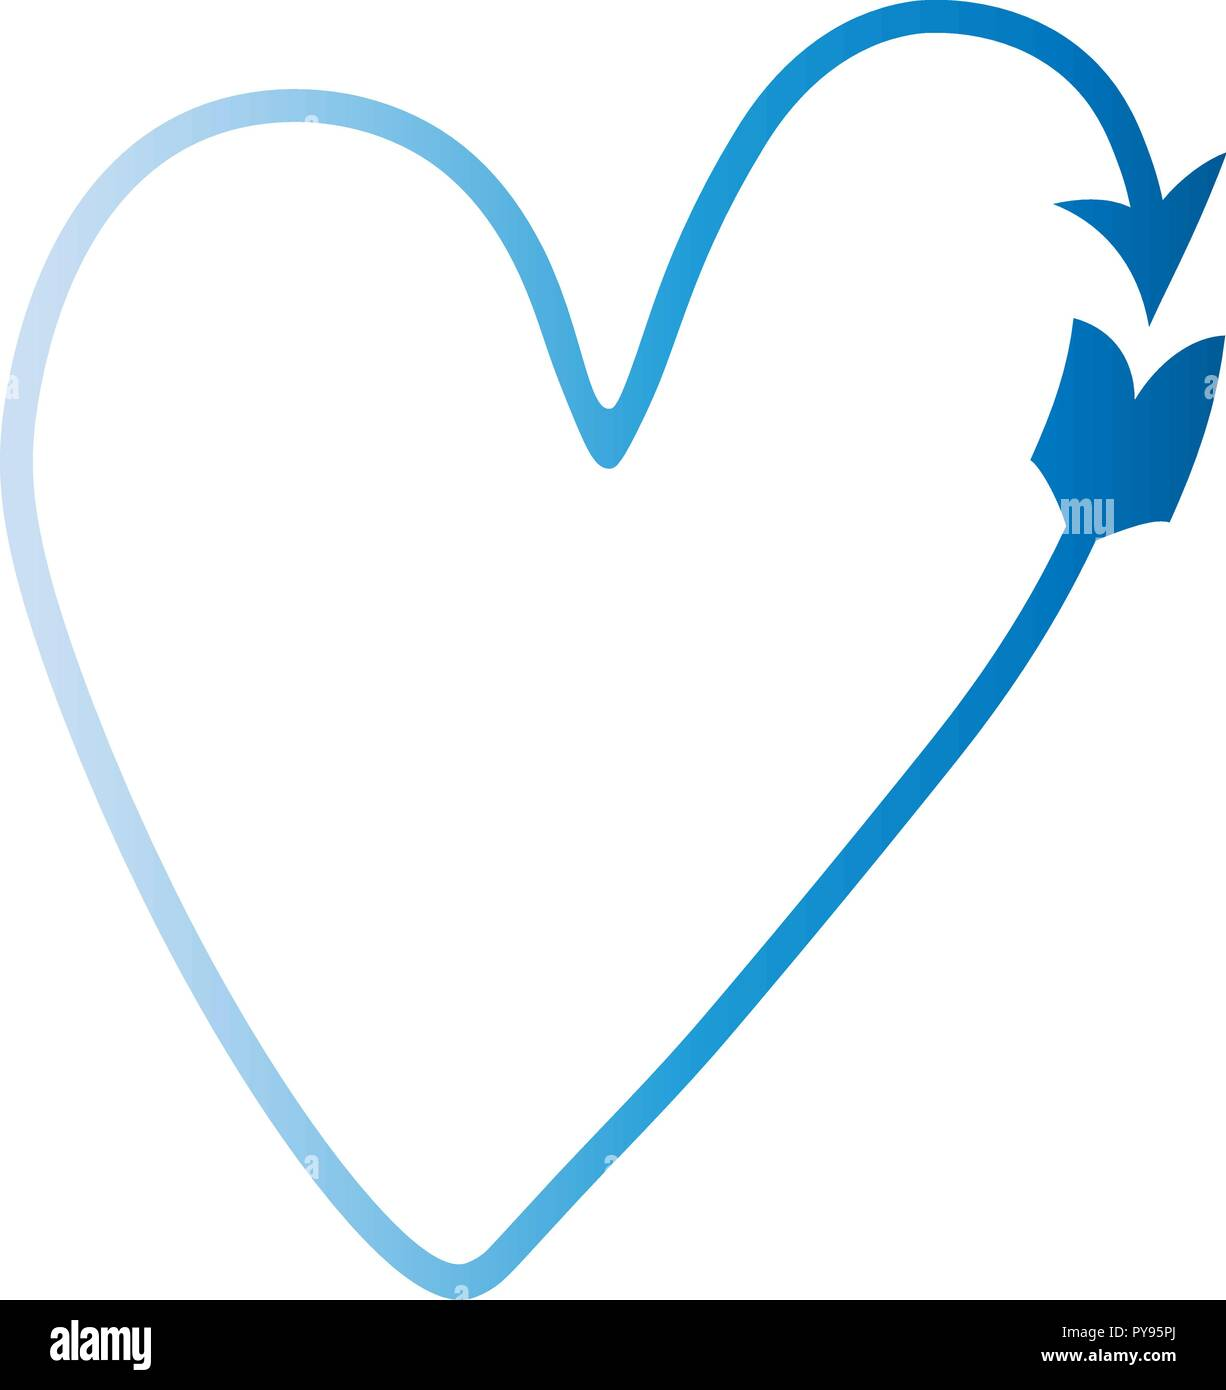 Vector Blue Heart In The Form Of An Arrow Fashionable Gradient